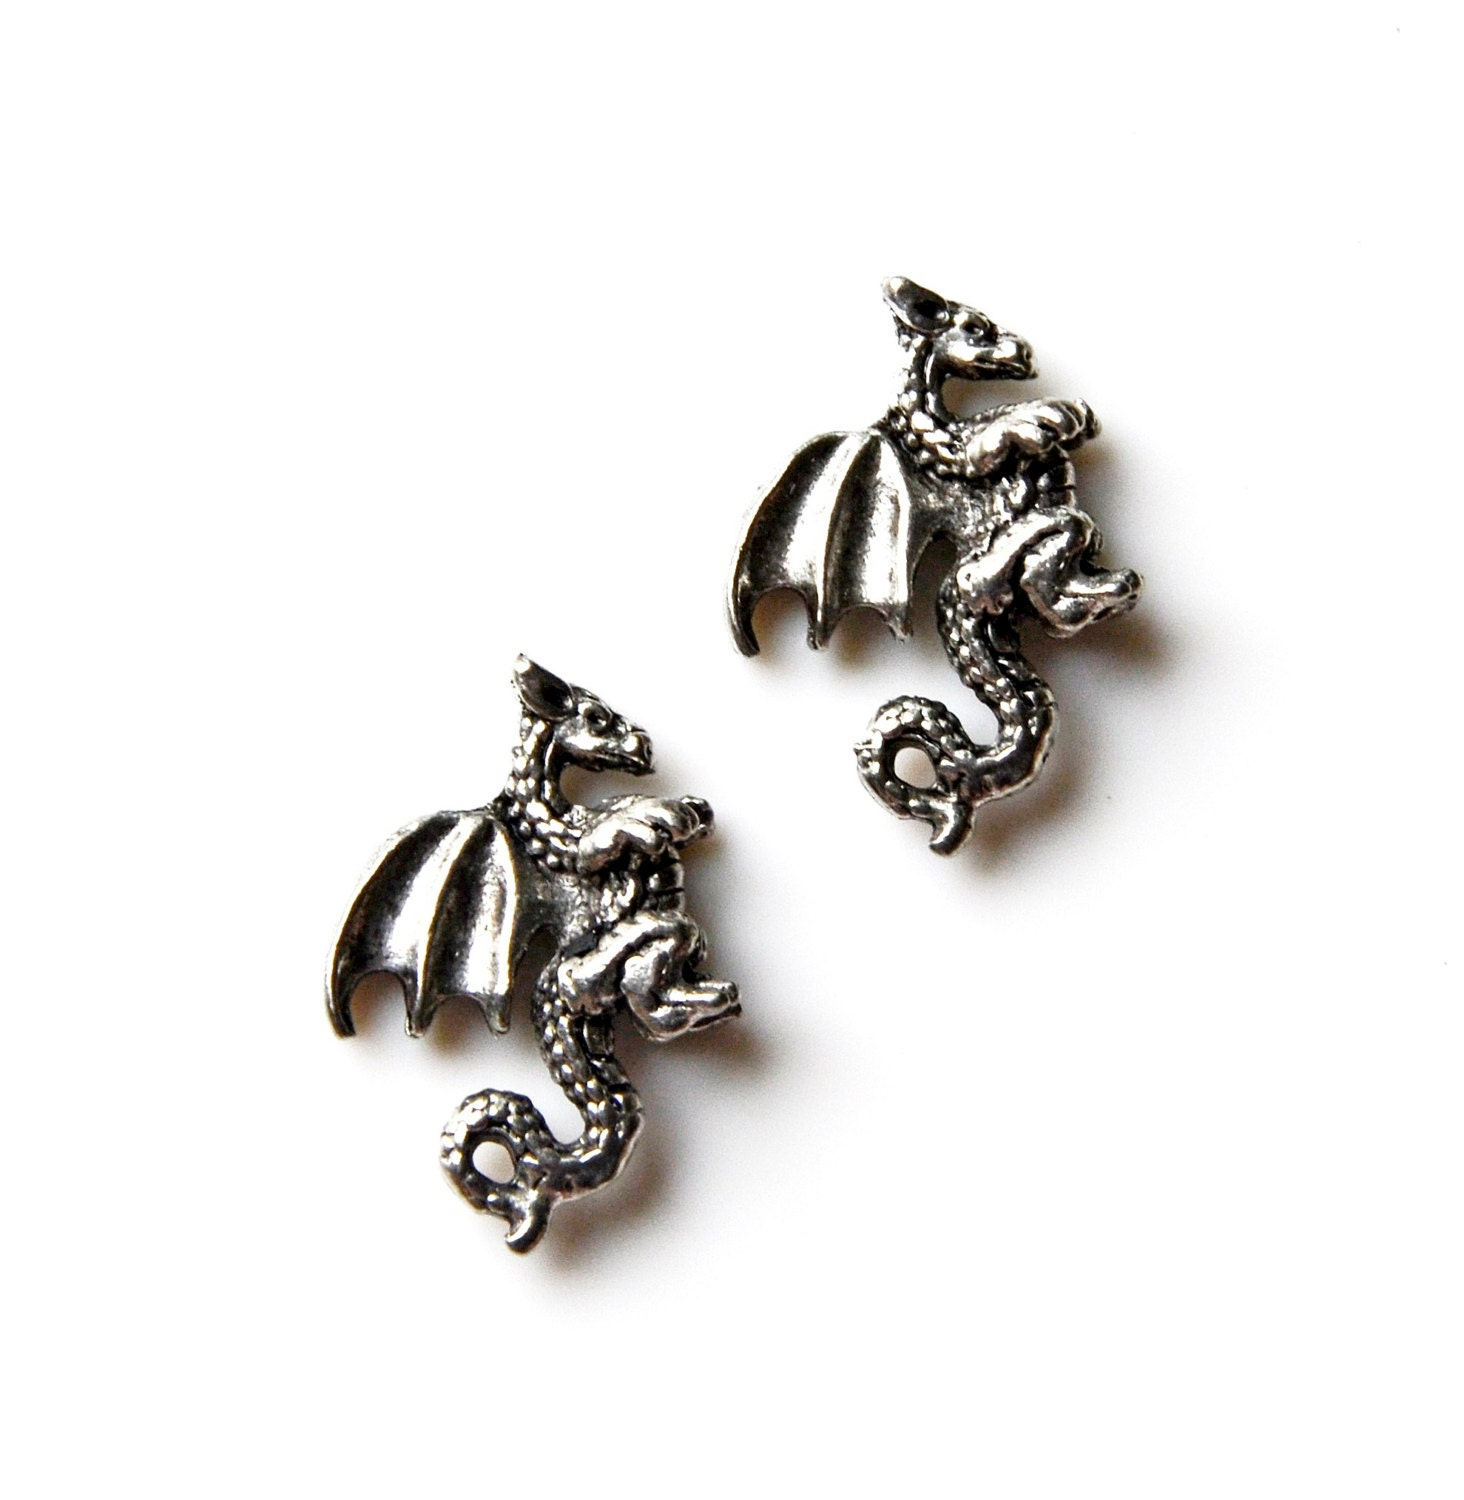 dragon cufflinks gifts for men anniversary gift by mancornas